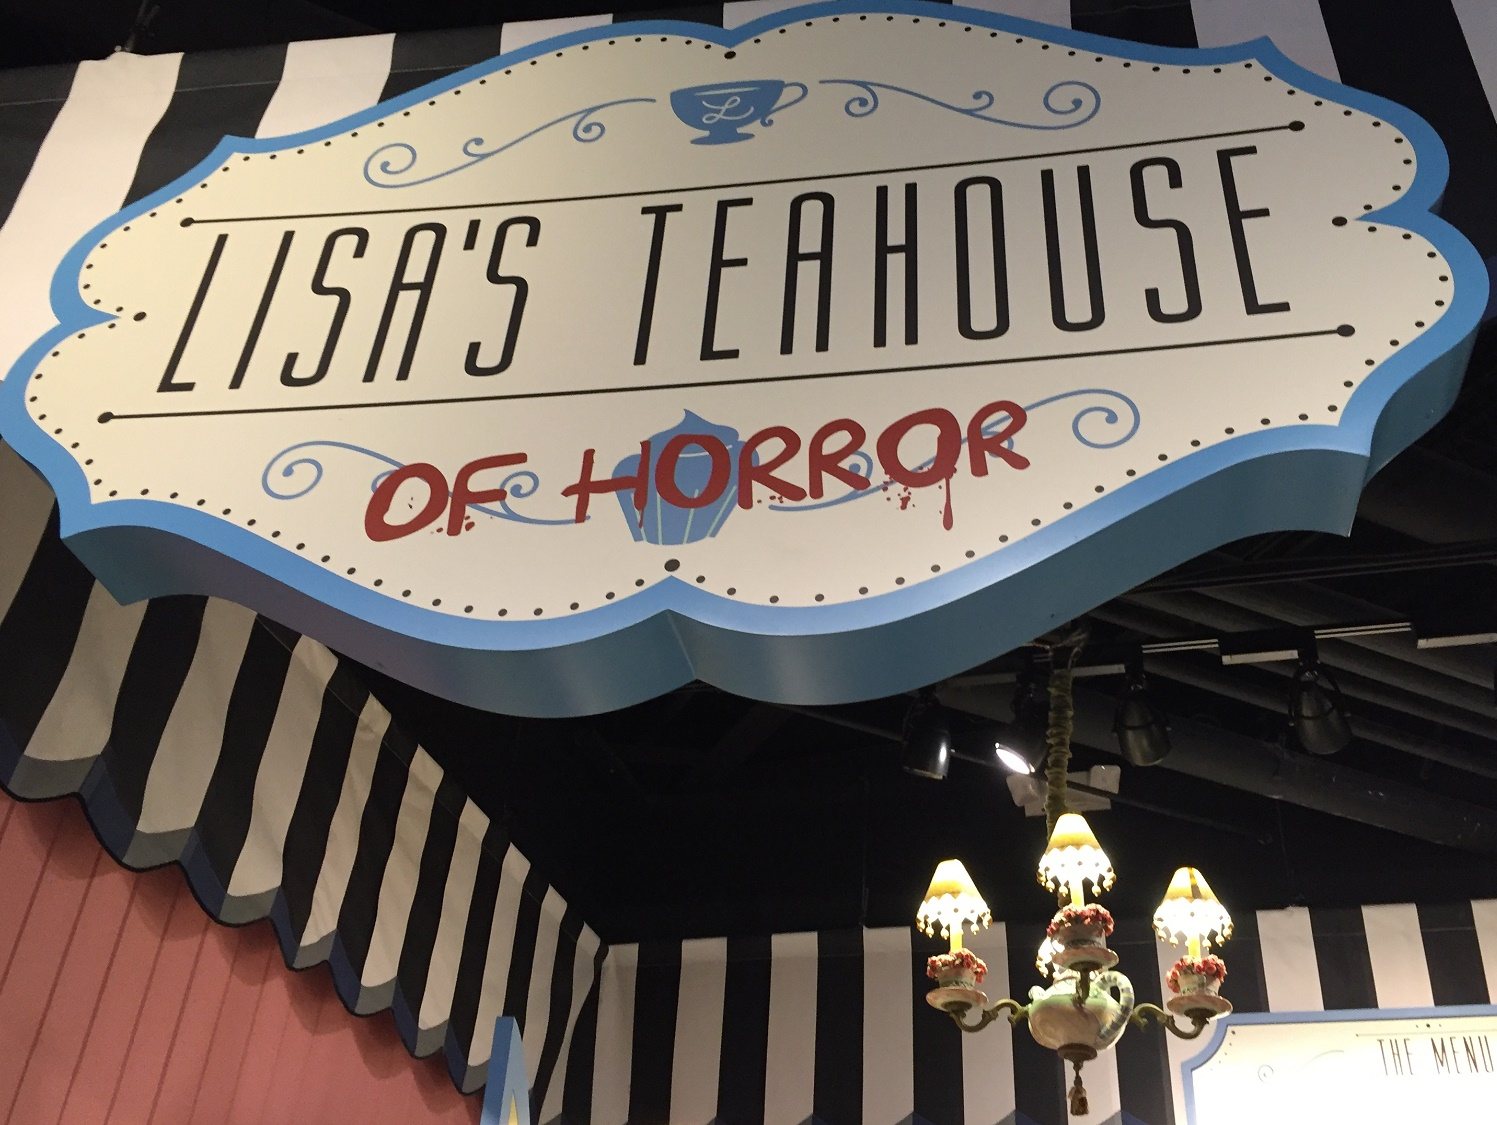 lisas-teahouse-of-horror-dining-guide.jpg